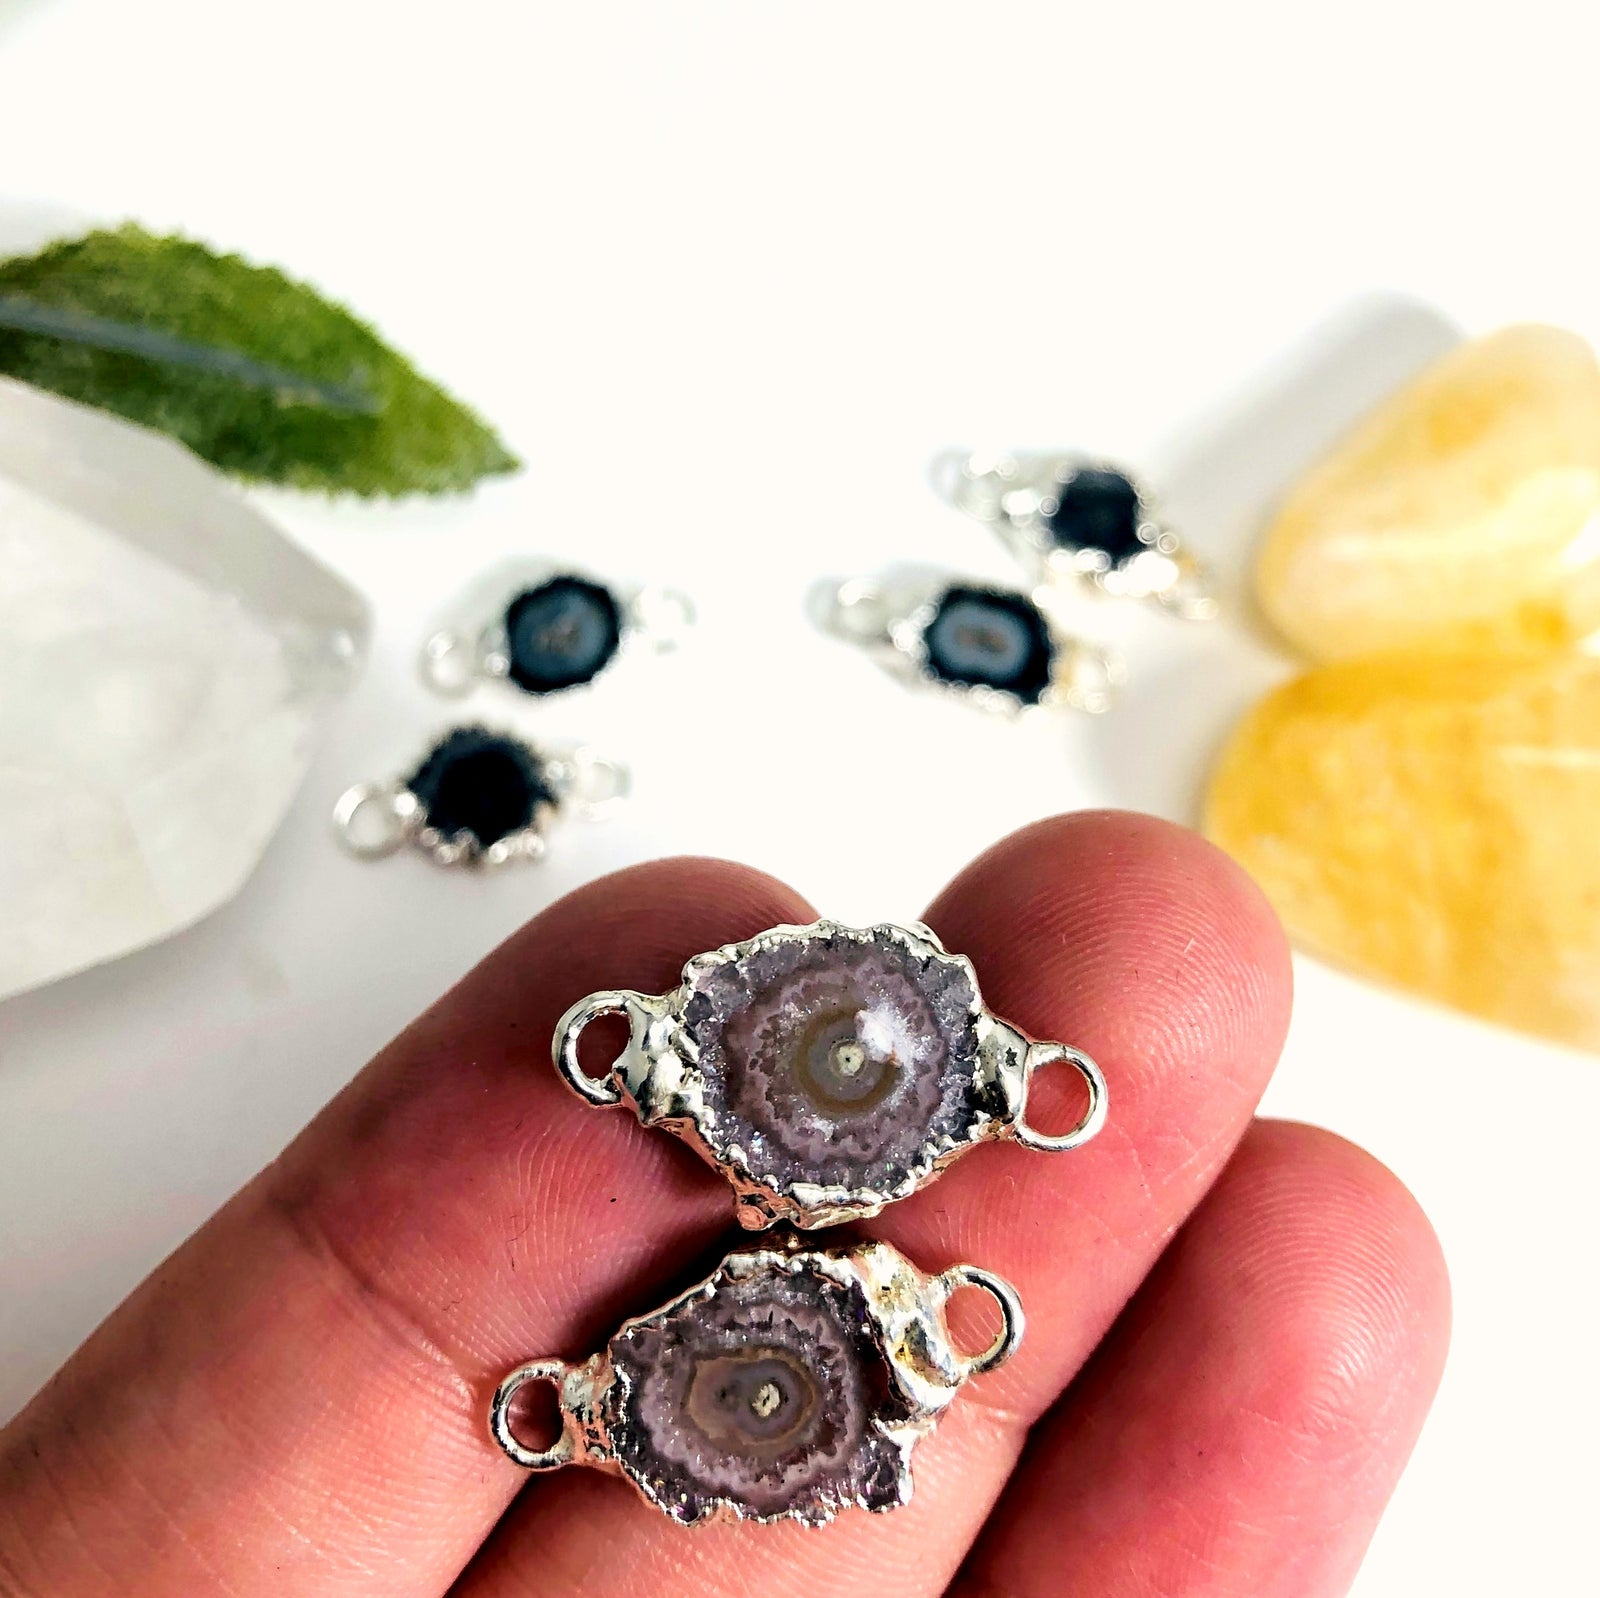 Amethyst Stalactite Connector Pairs in Electroplated 24k Gold/Silver Plating (S52B27b)